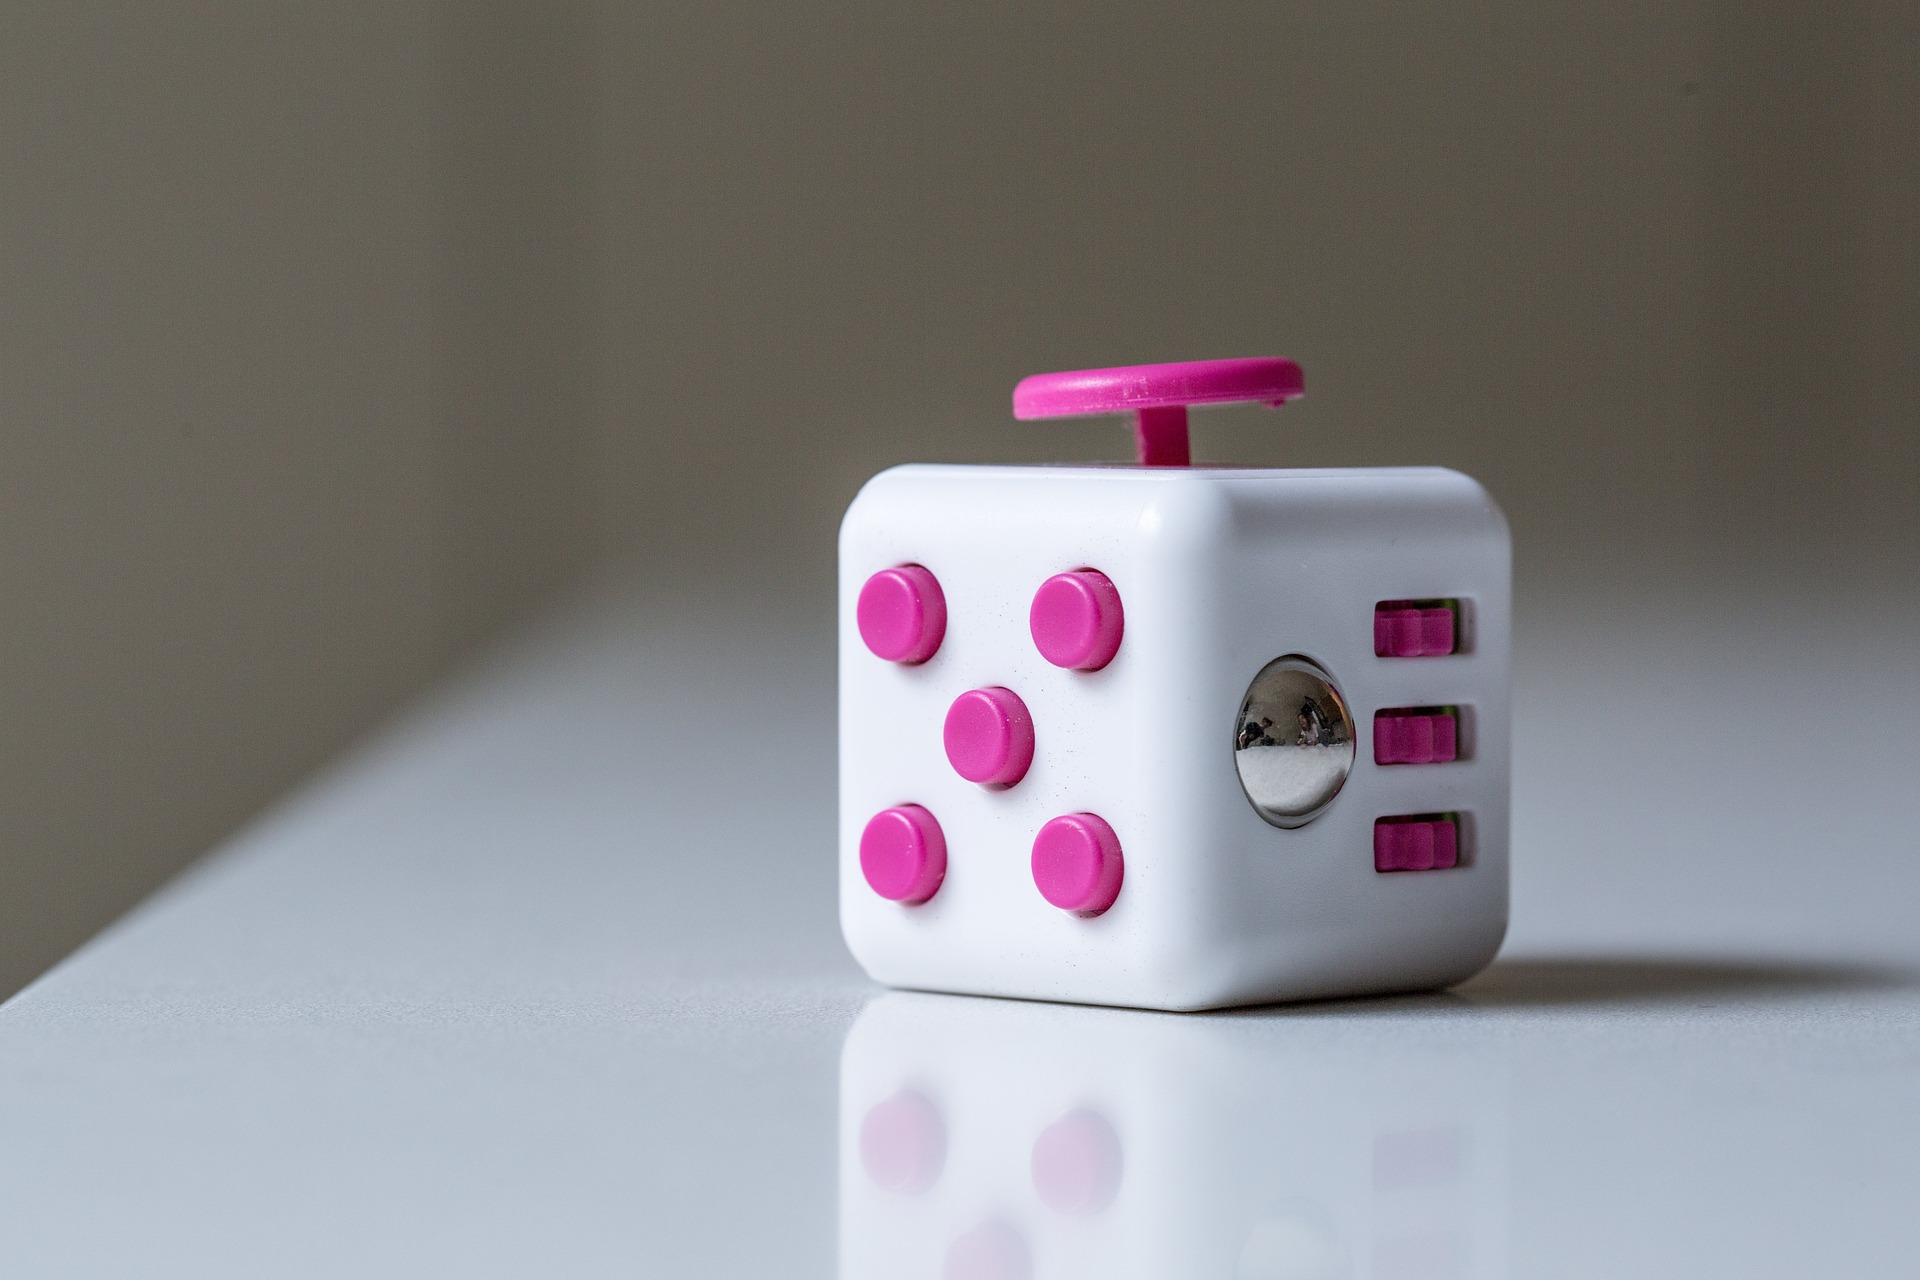 A fidget cube used for stress relief